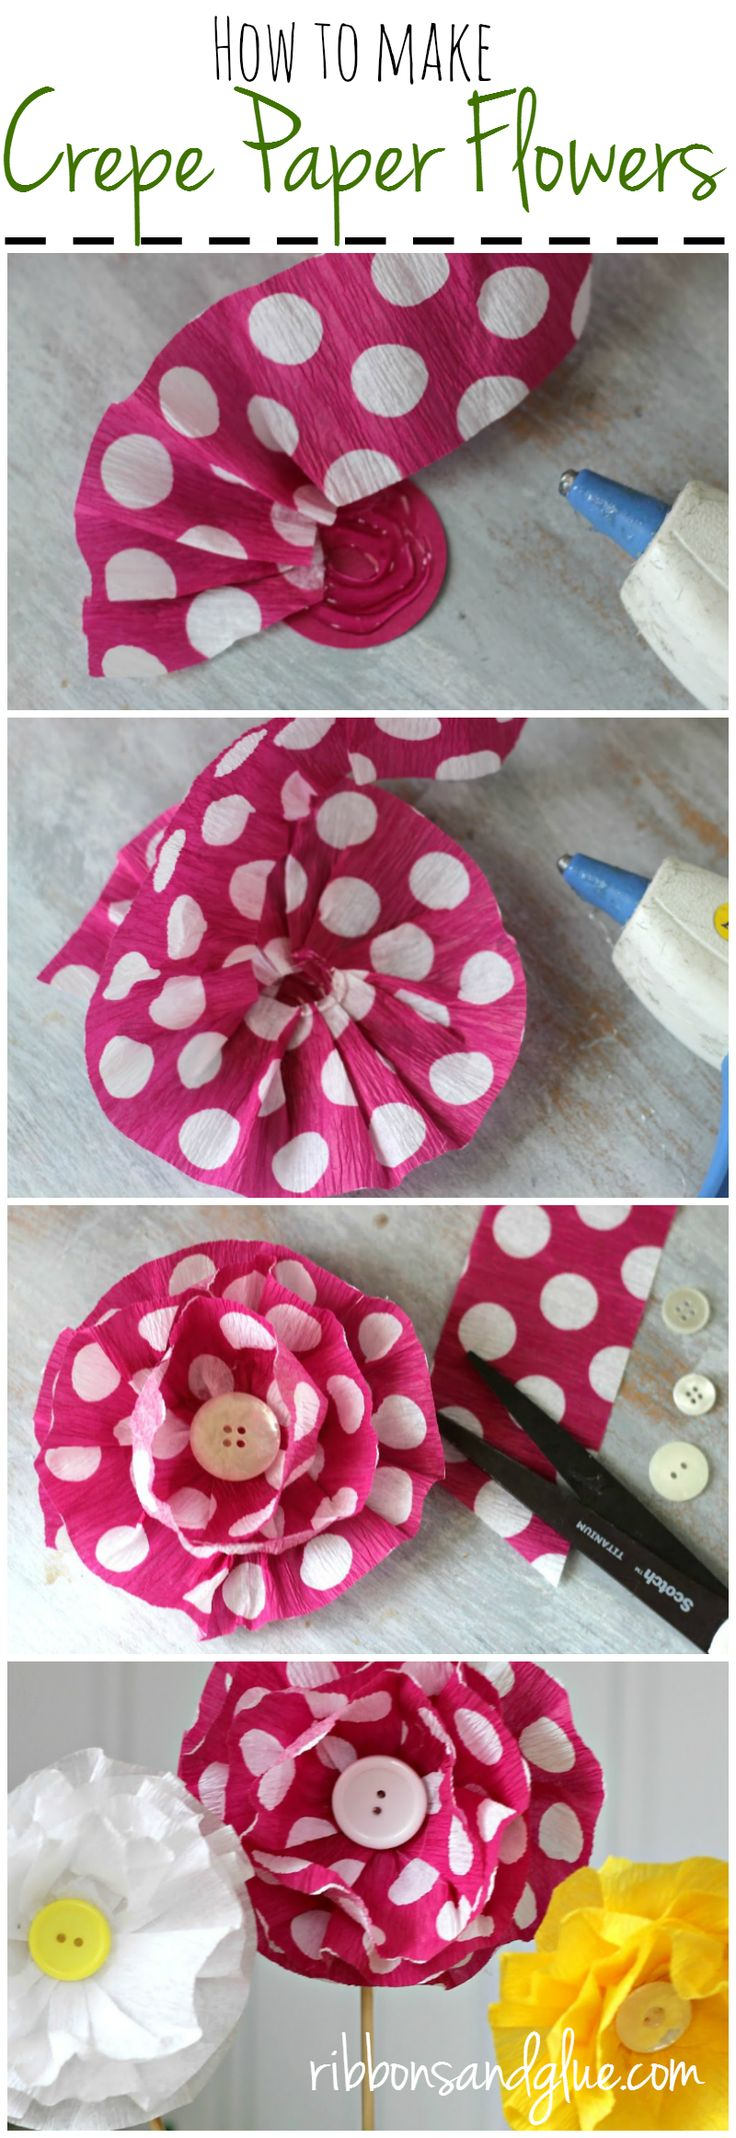 605 best paperribbon flowers images on pinterest fabric flowers how to make crepe paper flowers dhlflorist Image collections